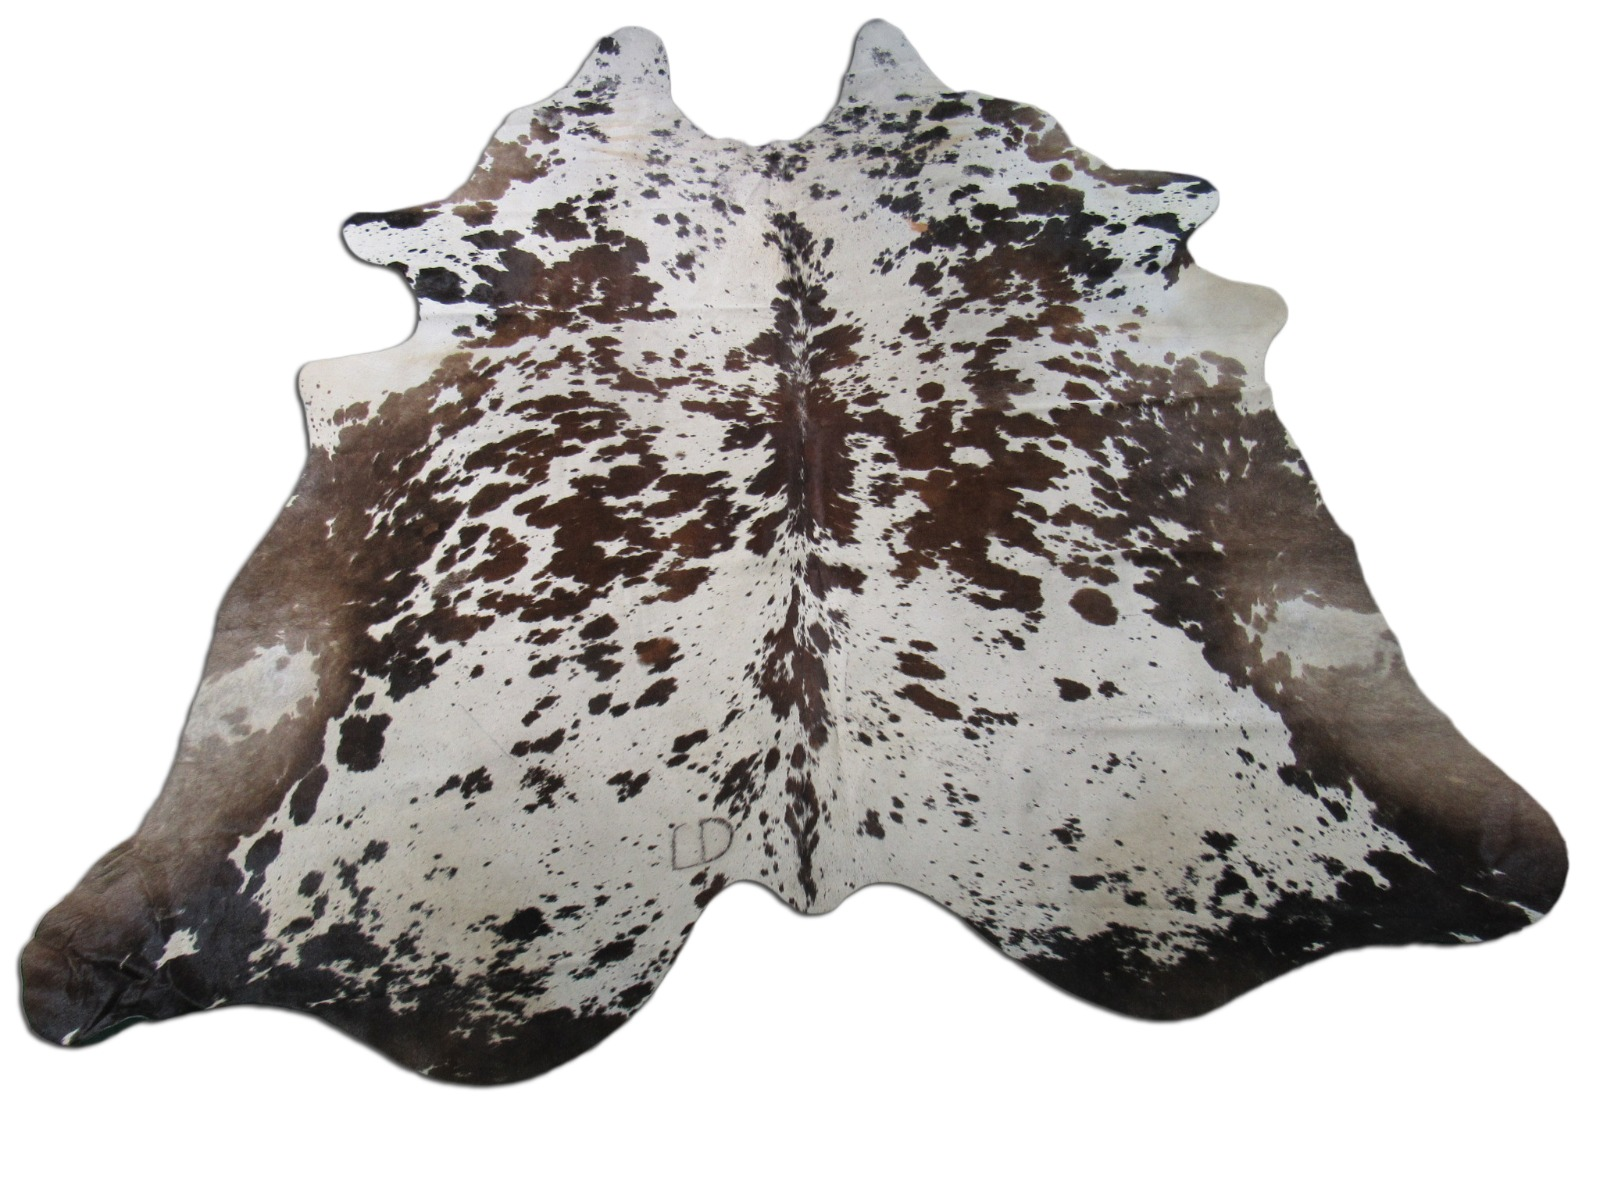 A-1376 Brown and White Speckled Cowhide Rug Size: 8' X 7 3/4'